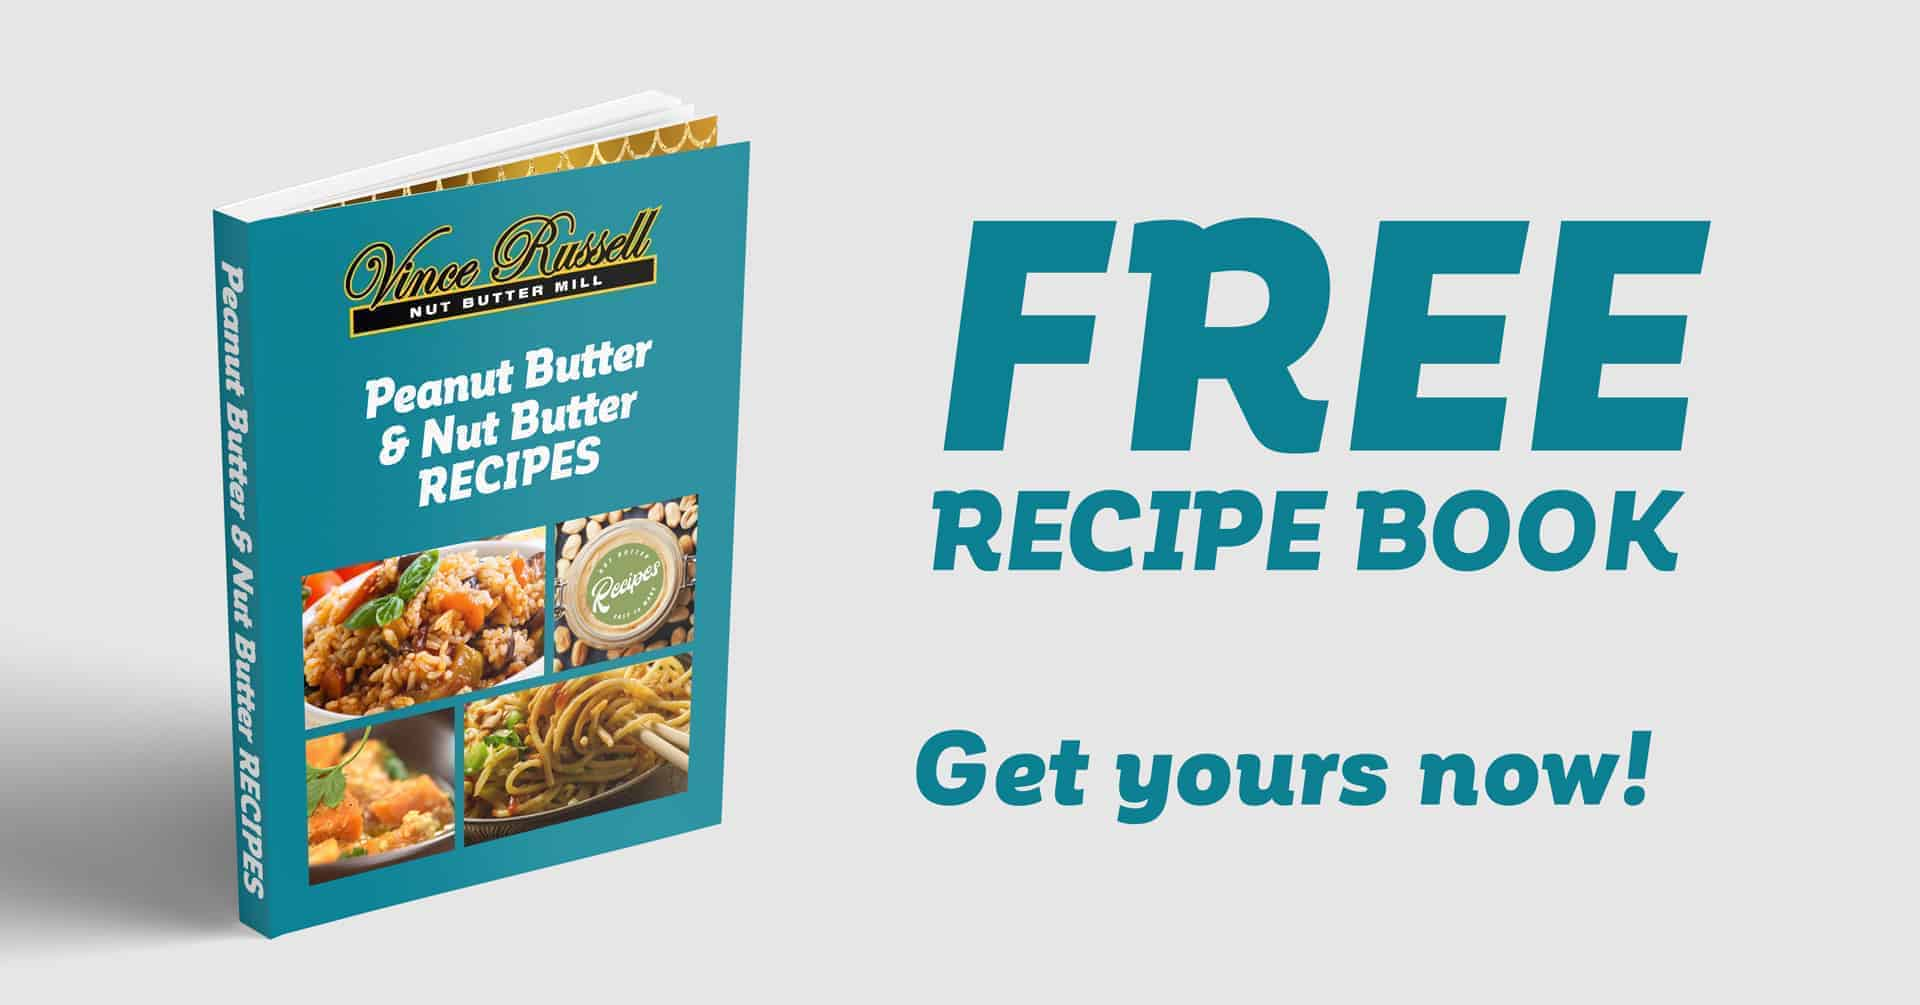 https://nutbuttermill.com.au/wp-content/uploads/Peanut-Butter-and-Nut-Butter-Recipes-Free-eBook-by-Vince-Russell-Nut-Butter-Mill-FB.jpg